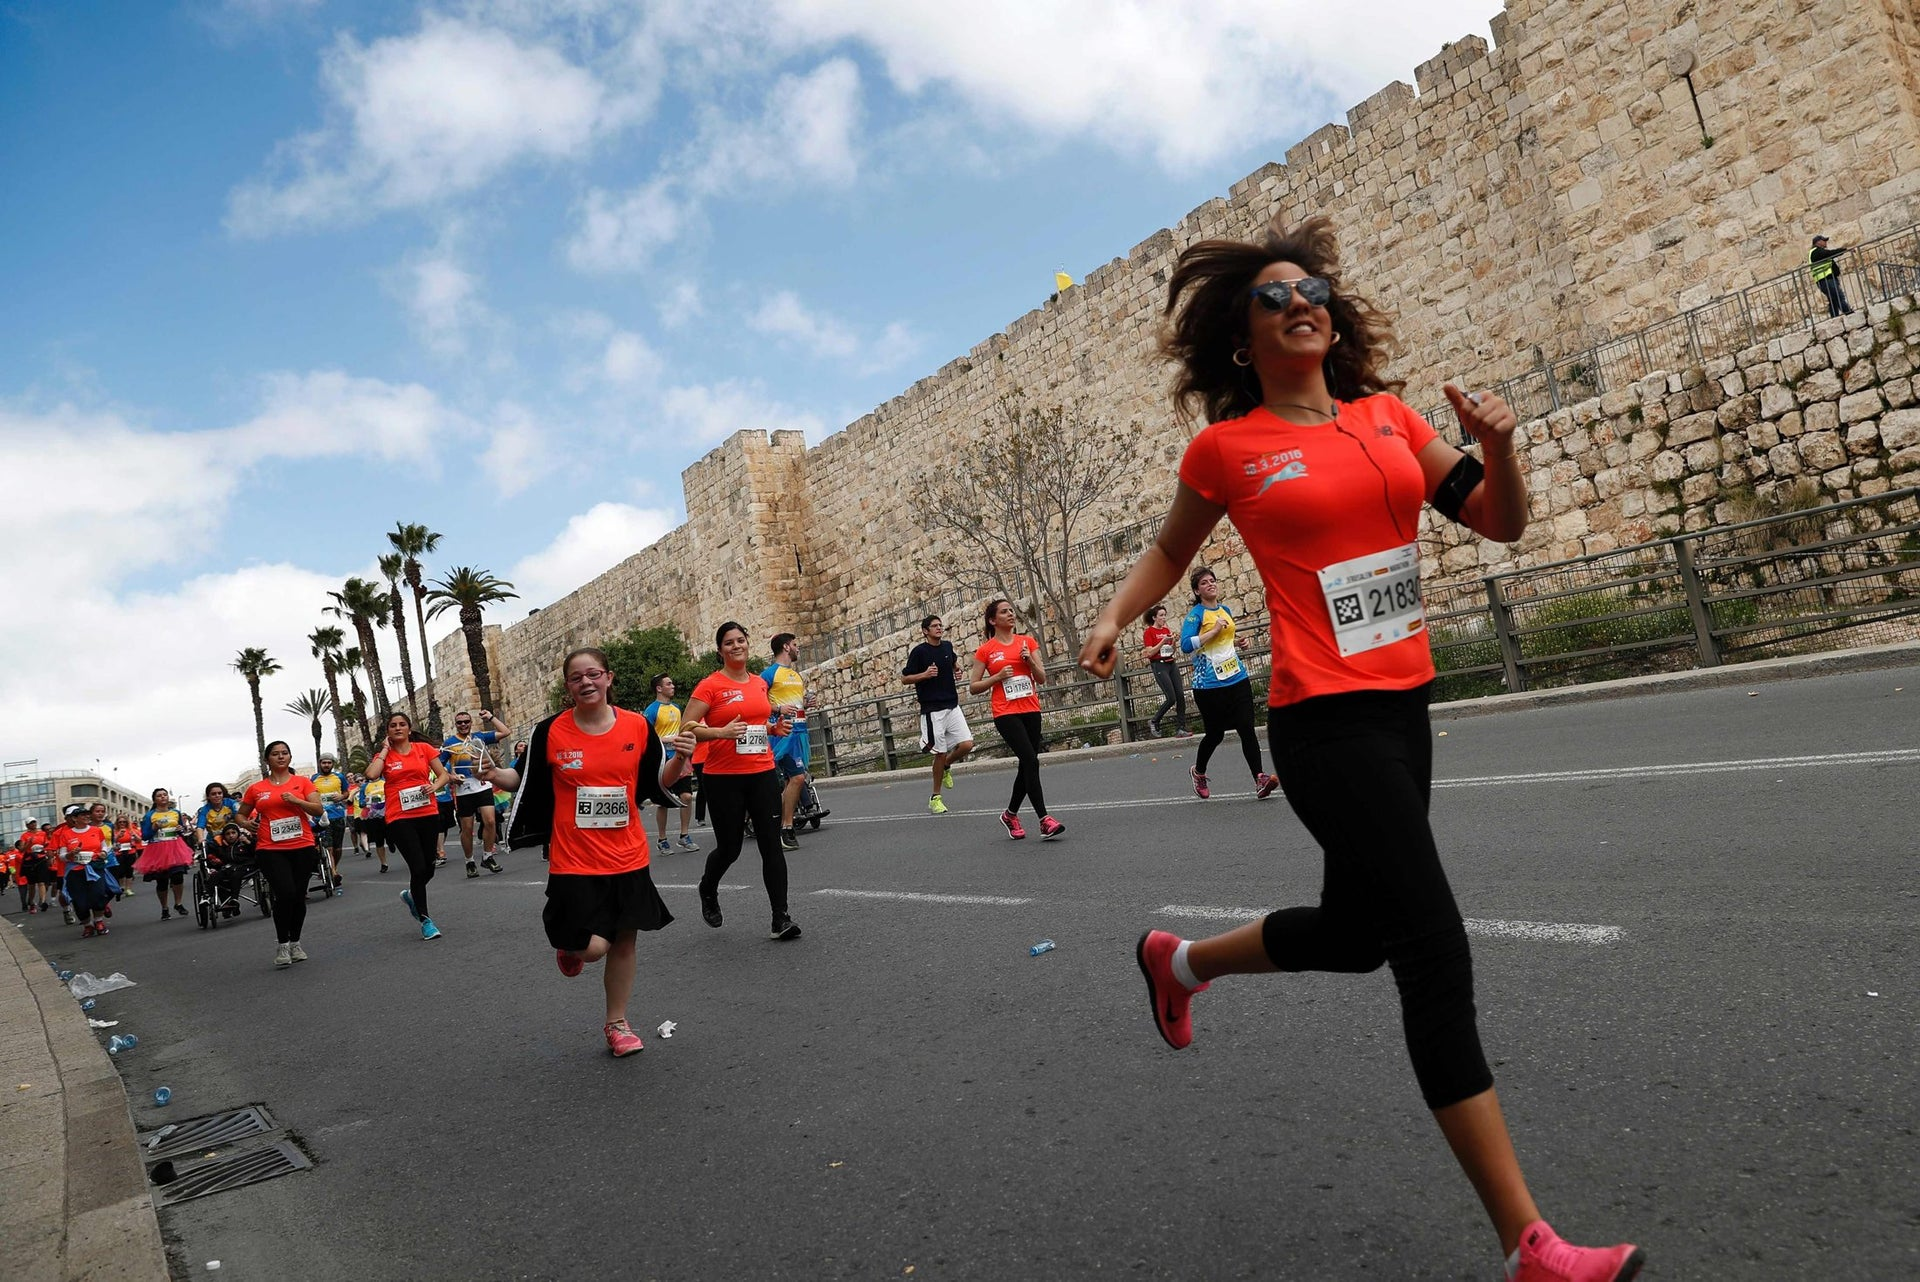 Competitors run along the Jerusalem's Old City ramparts during the 6th Jerusalem's marathon, on March 18, 2016.